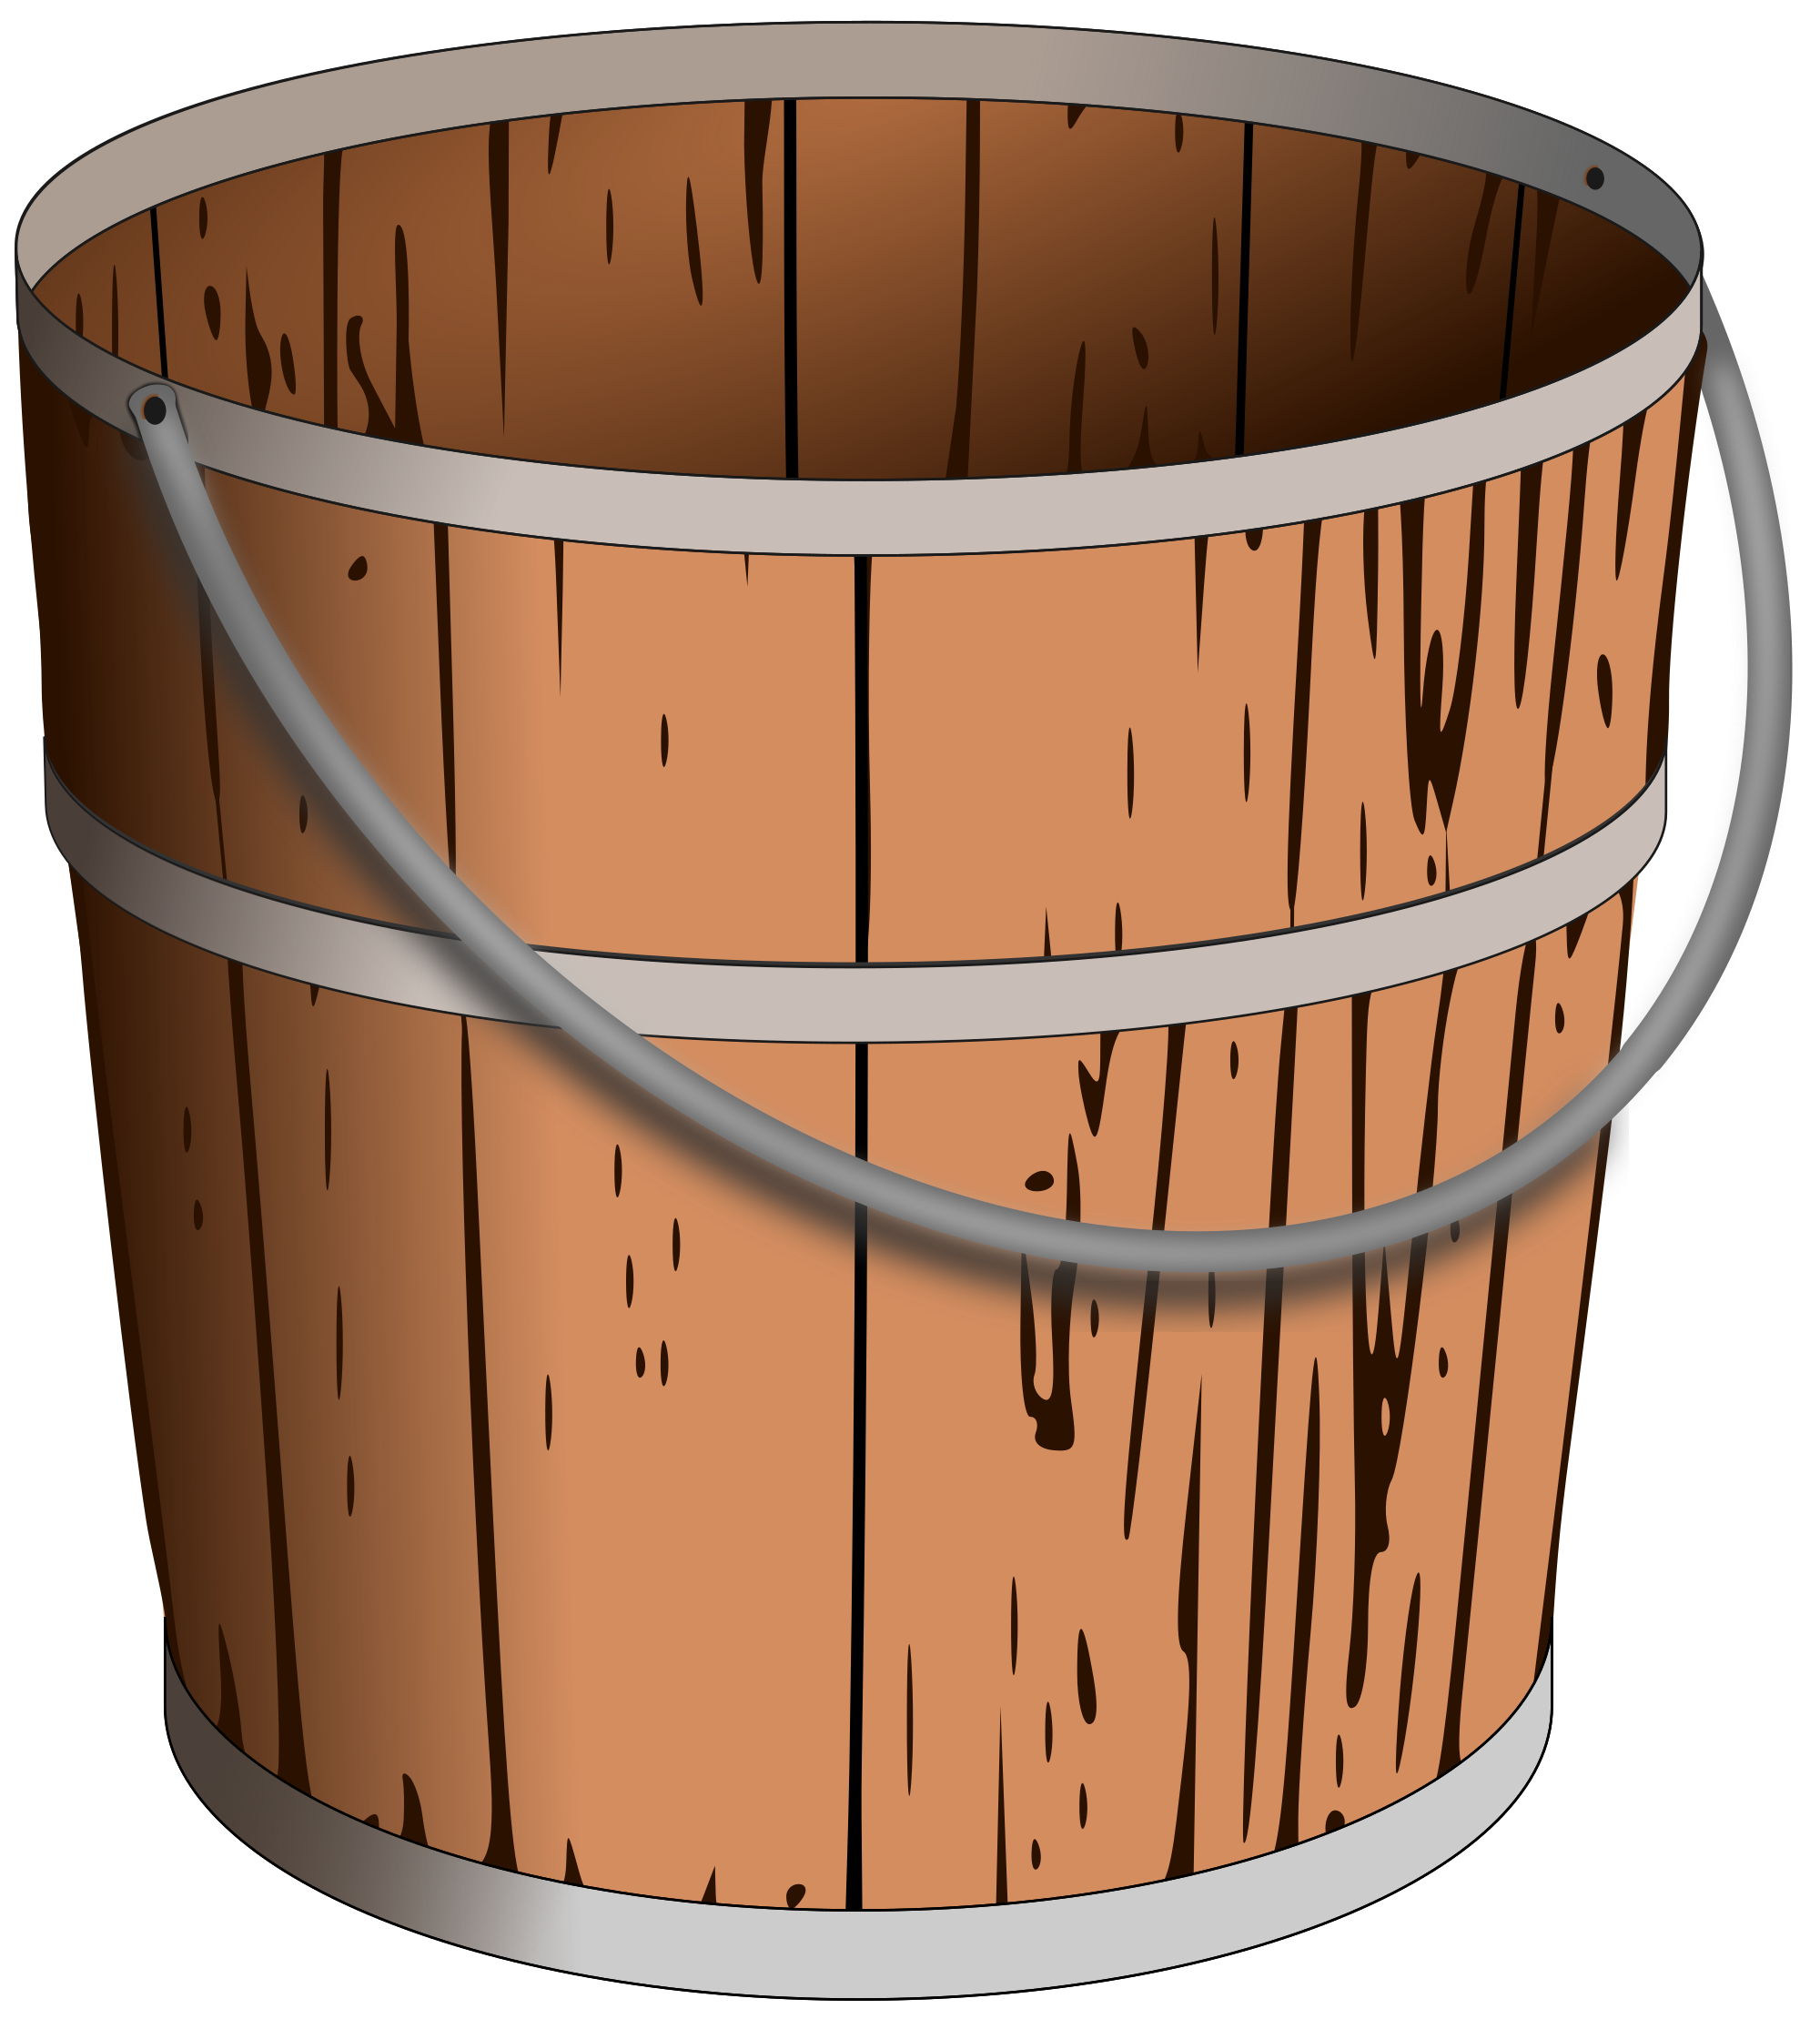 Water clipart bucket, Water bucket Transparent FREE for.